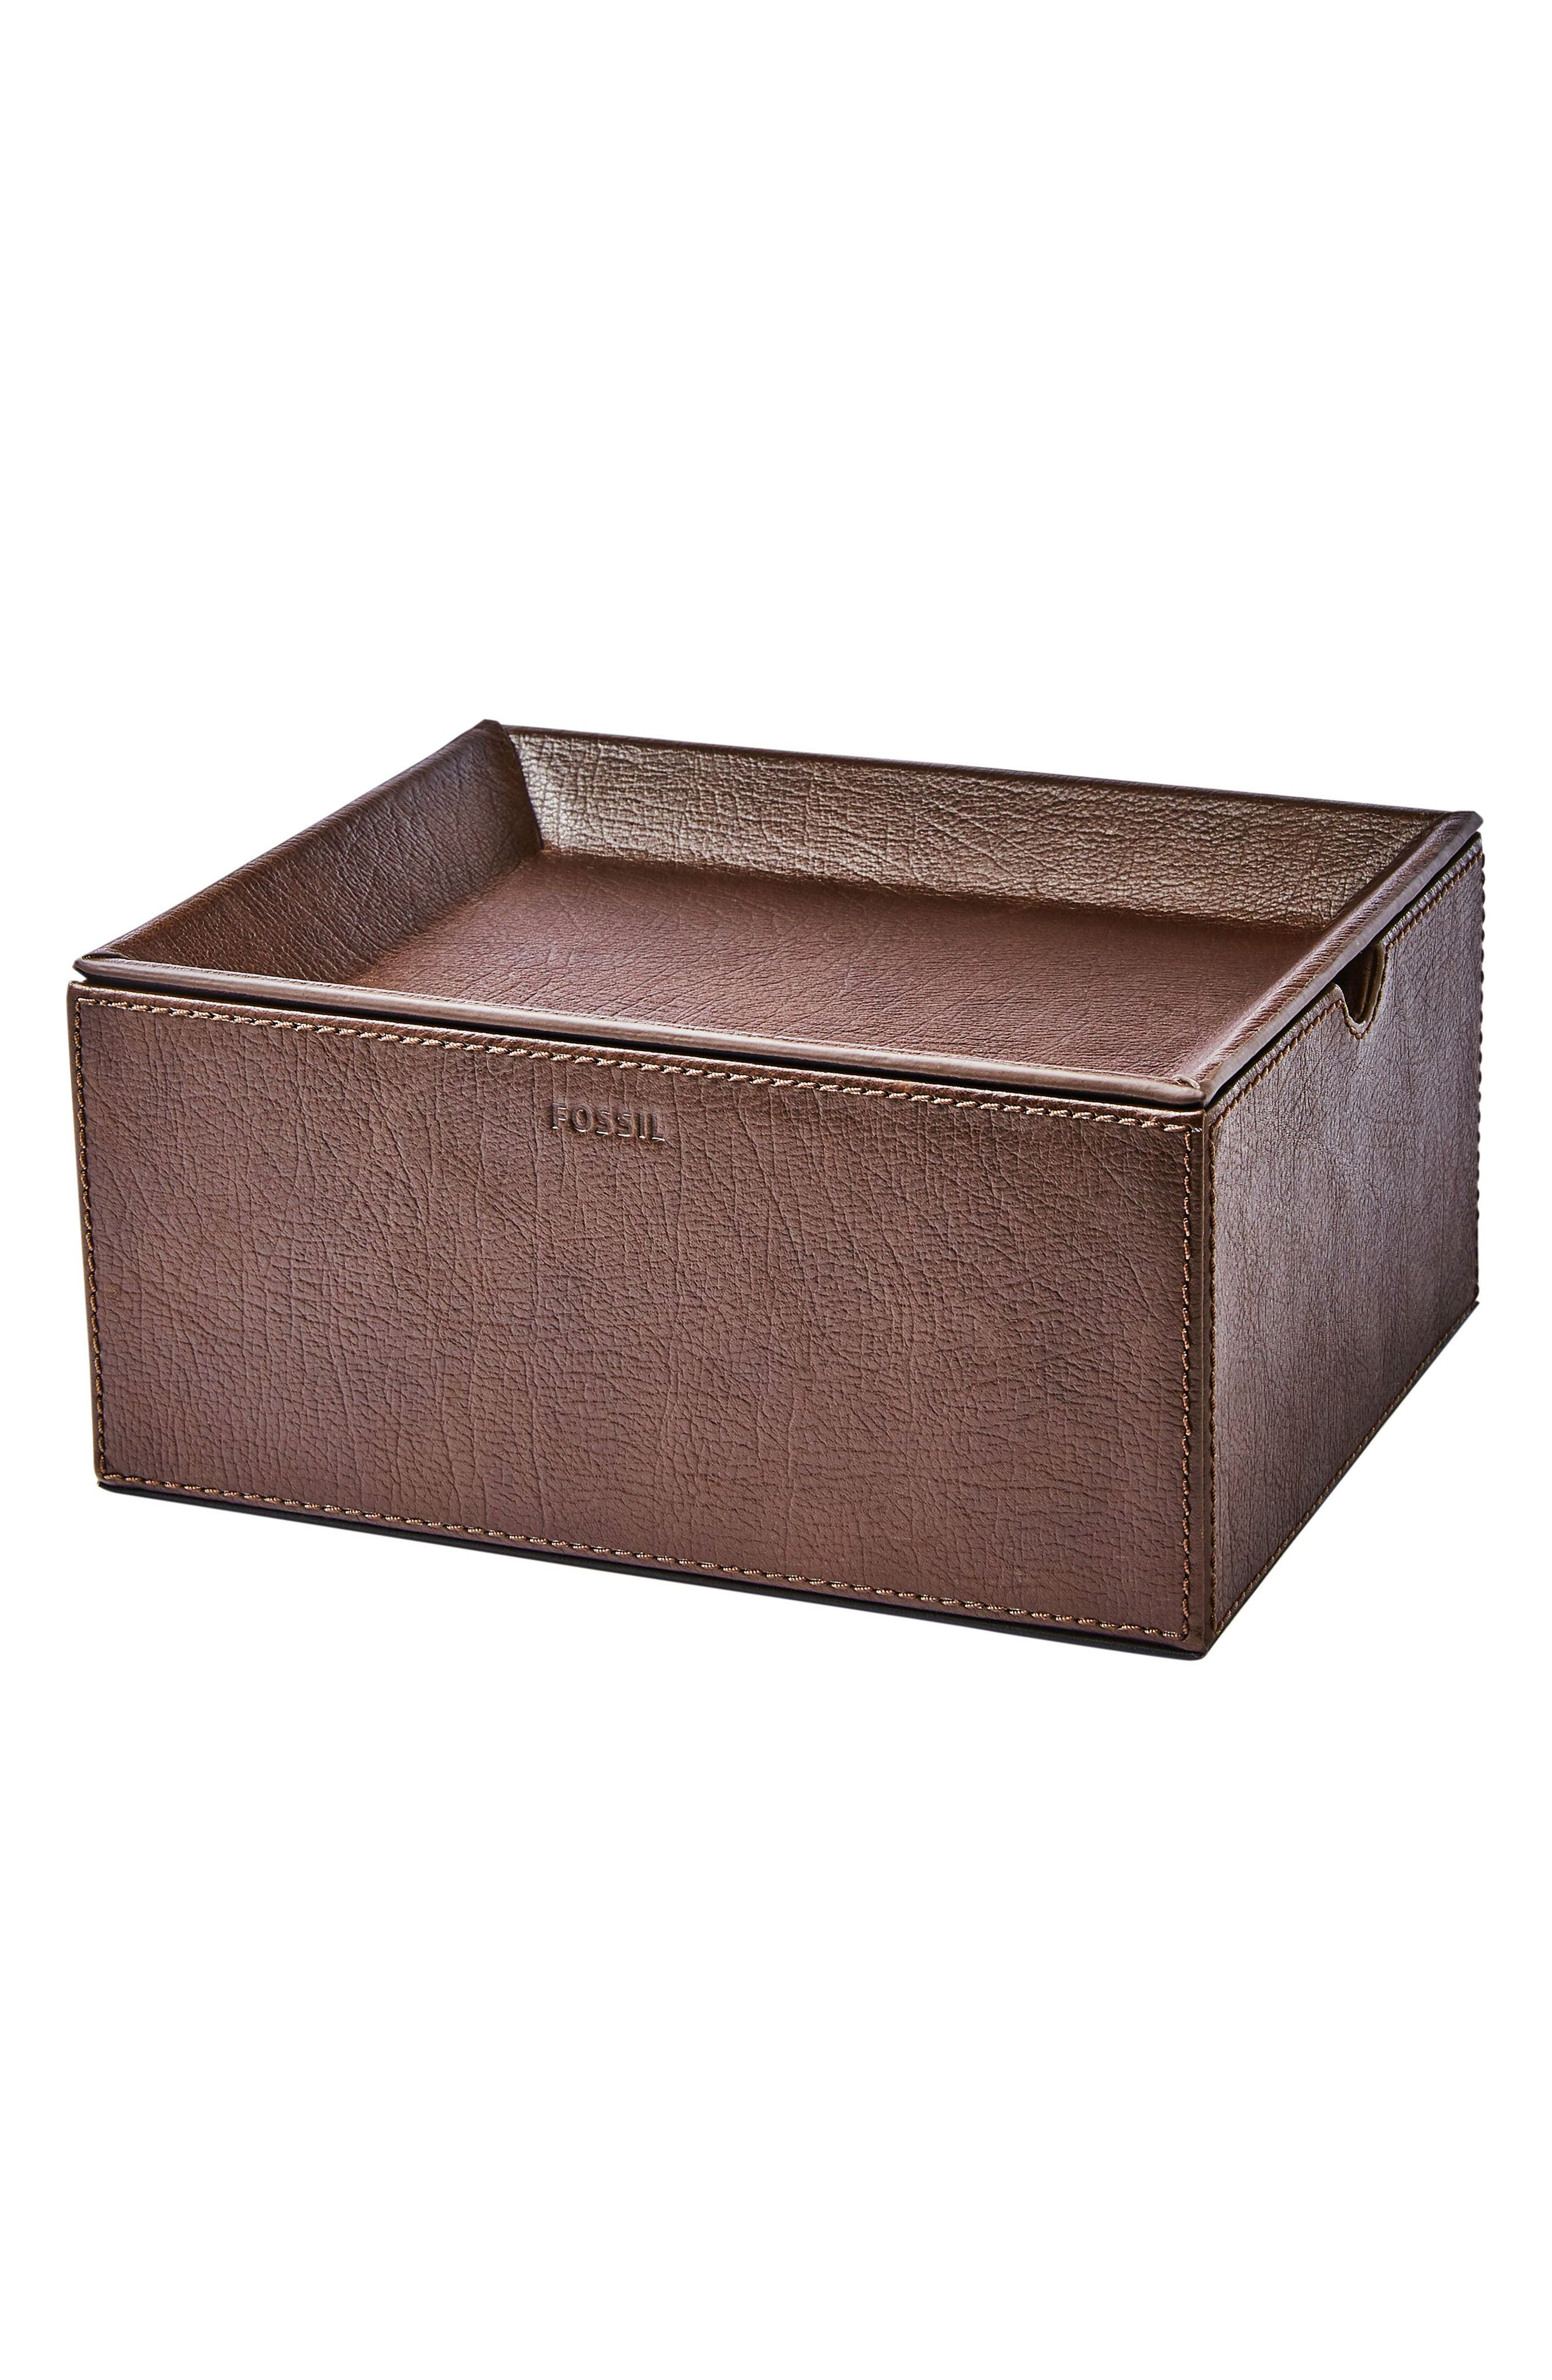 Fossil Jewelry Boxes Jewelry Holders Nordstrom